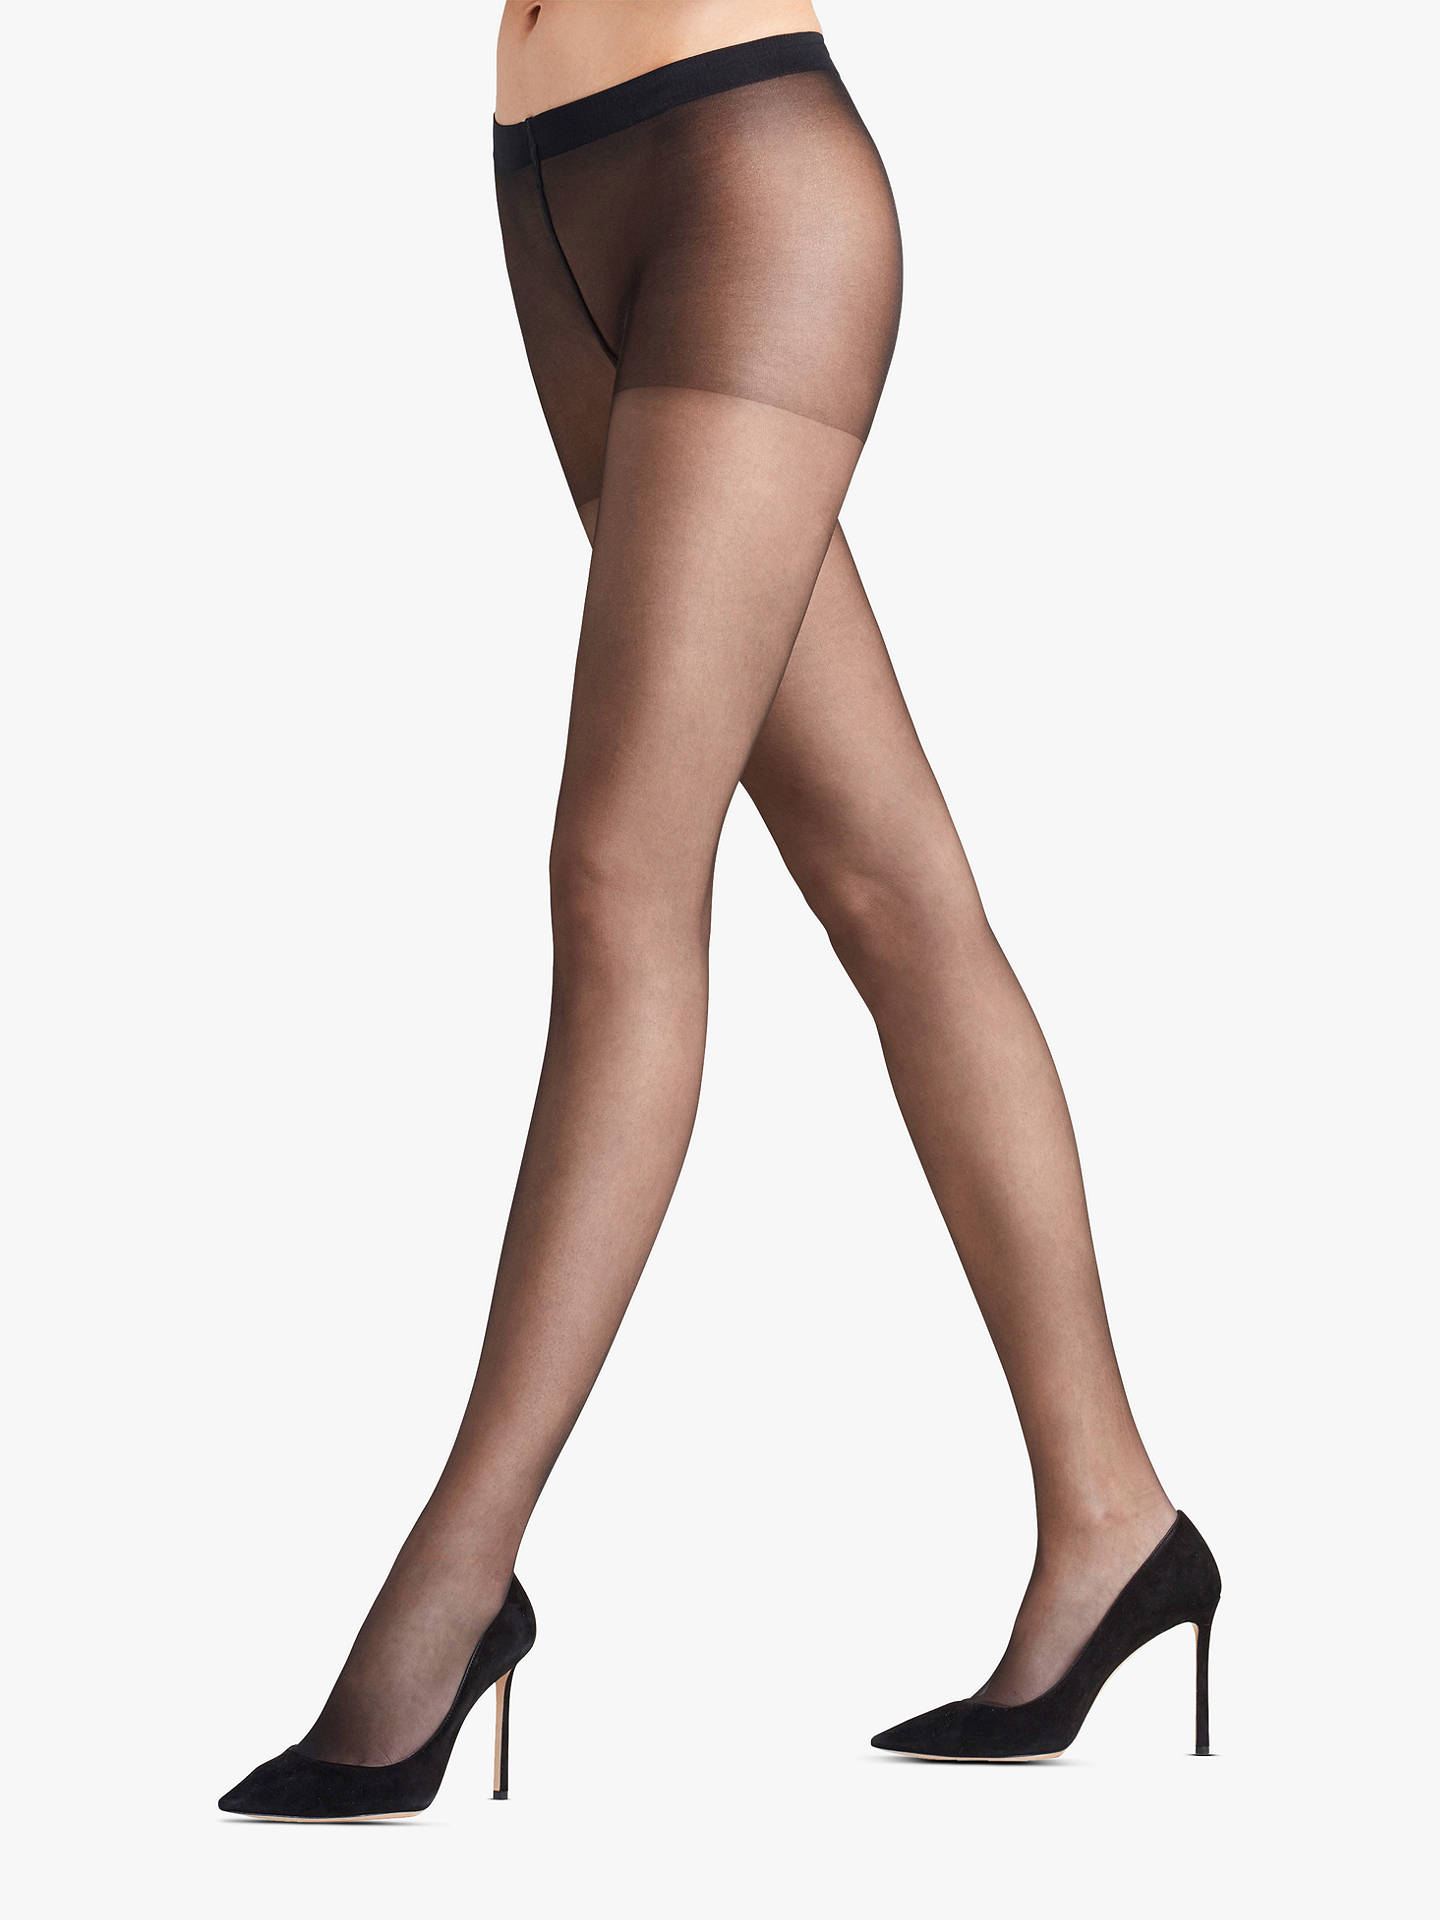 cde1d99712cde Buy FALKE 8 Denier Invisible Deluxe Tights, Black, S-M Online at  johnlewis.com ...